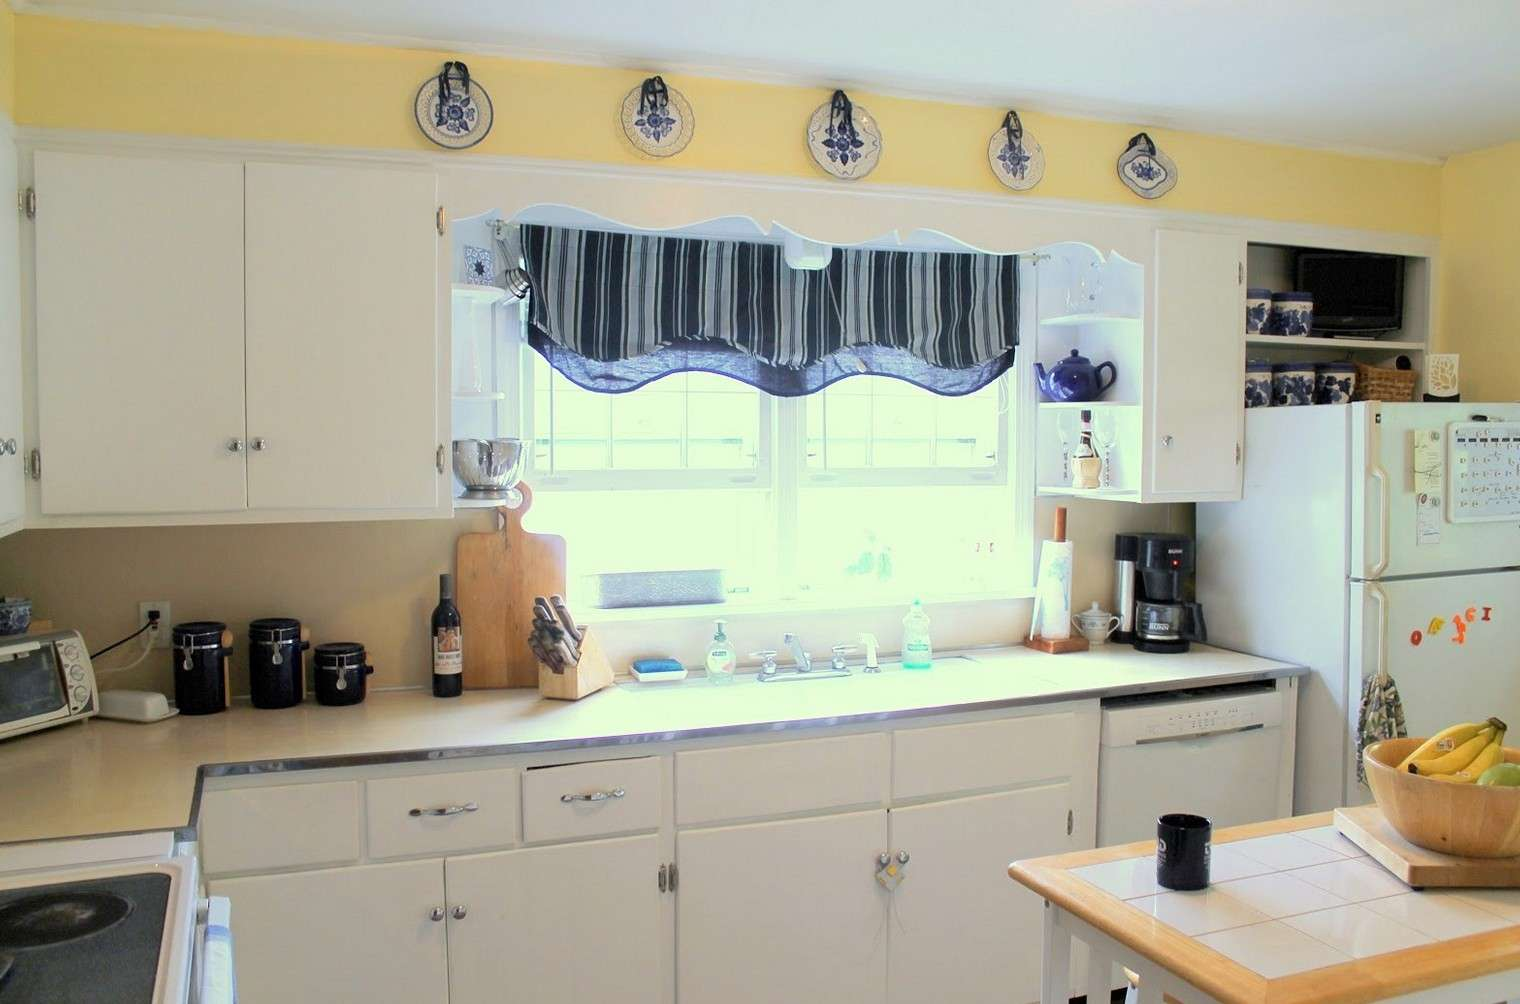 Home Together Kitchen Curtain Ideas Small Window Curtains